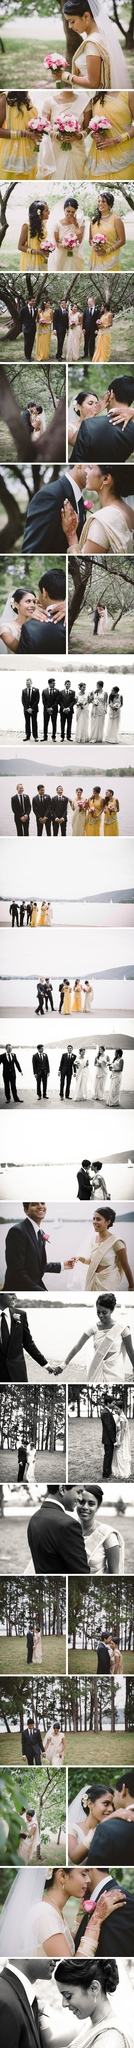 Canberra National Portrait Gallery Wedding Photos